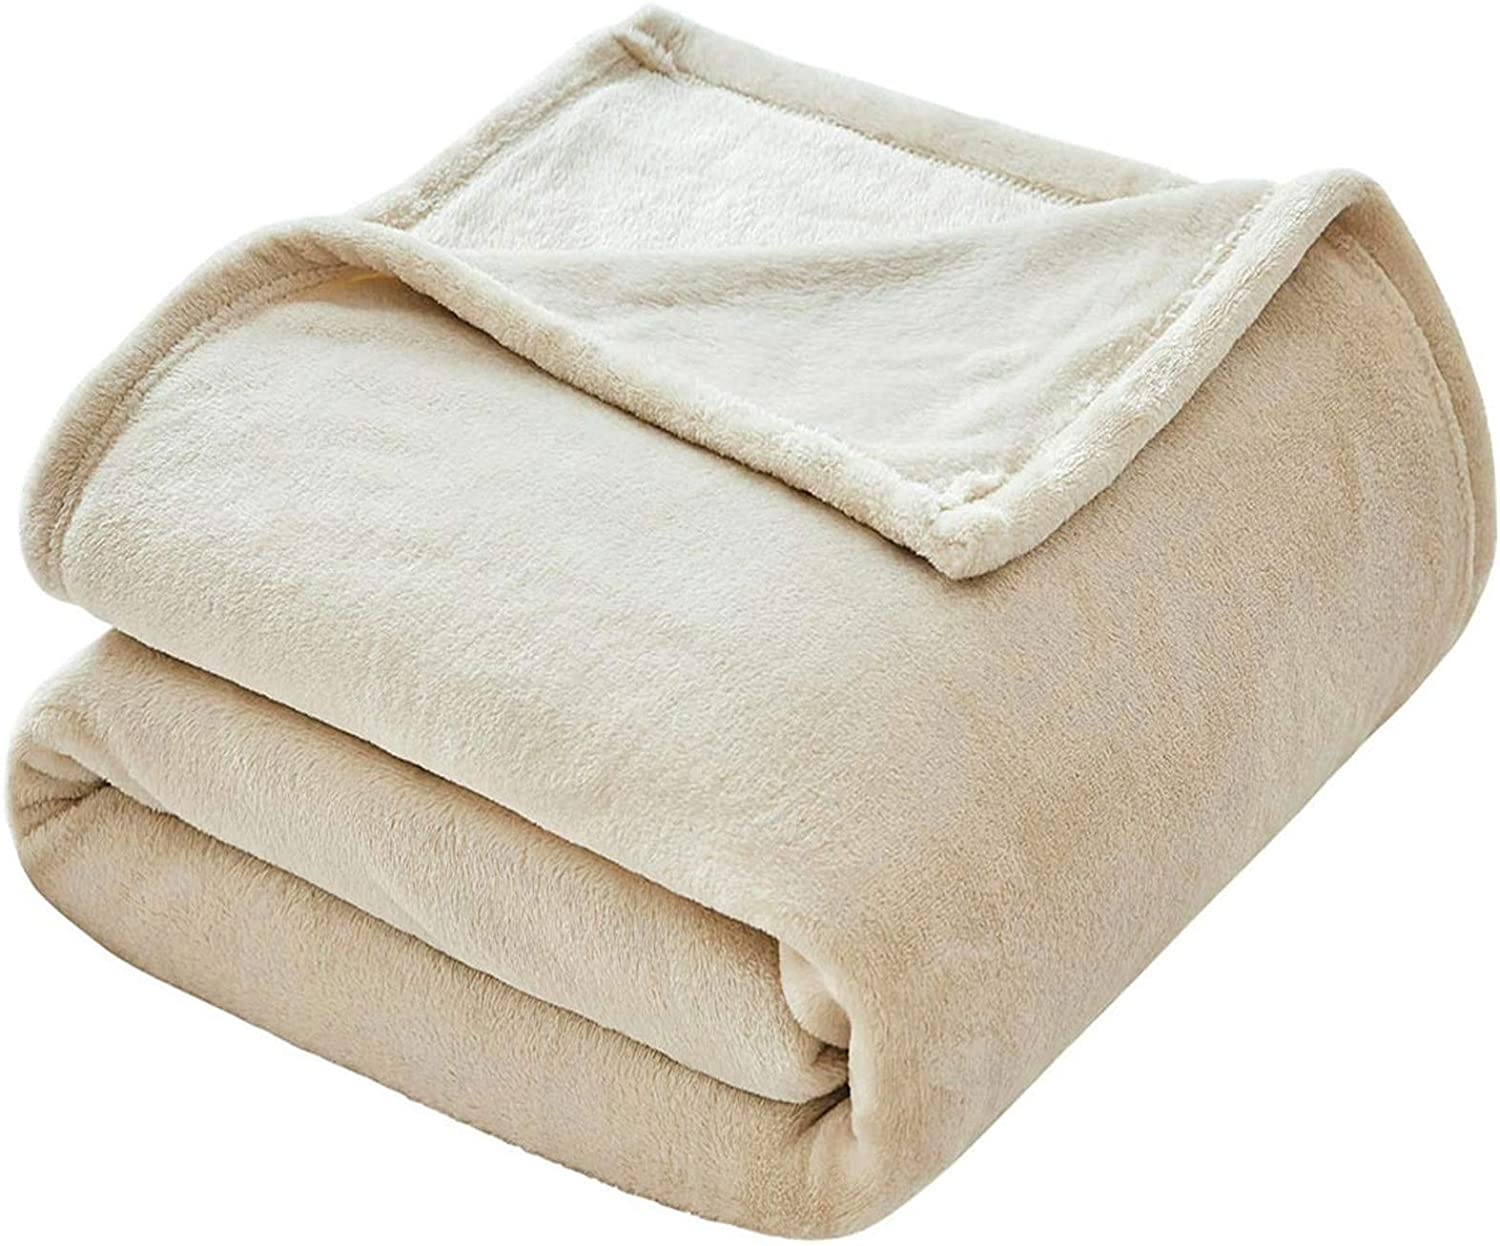 VEEYOO Flannel Fleece Blanket Twin Outlet sale feature Ivory Size - Throw Popular shop is the lowest price challenge fo